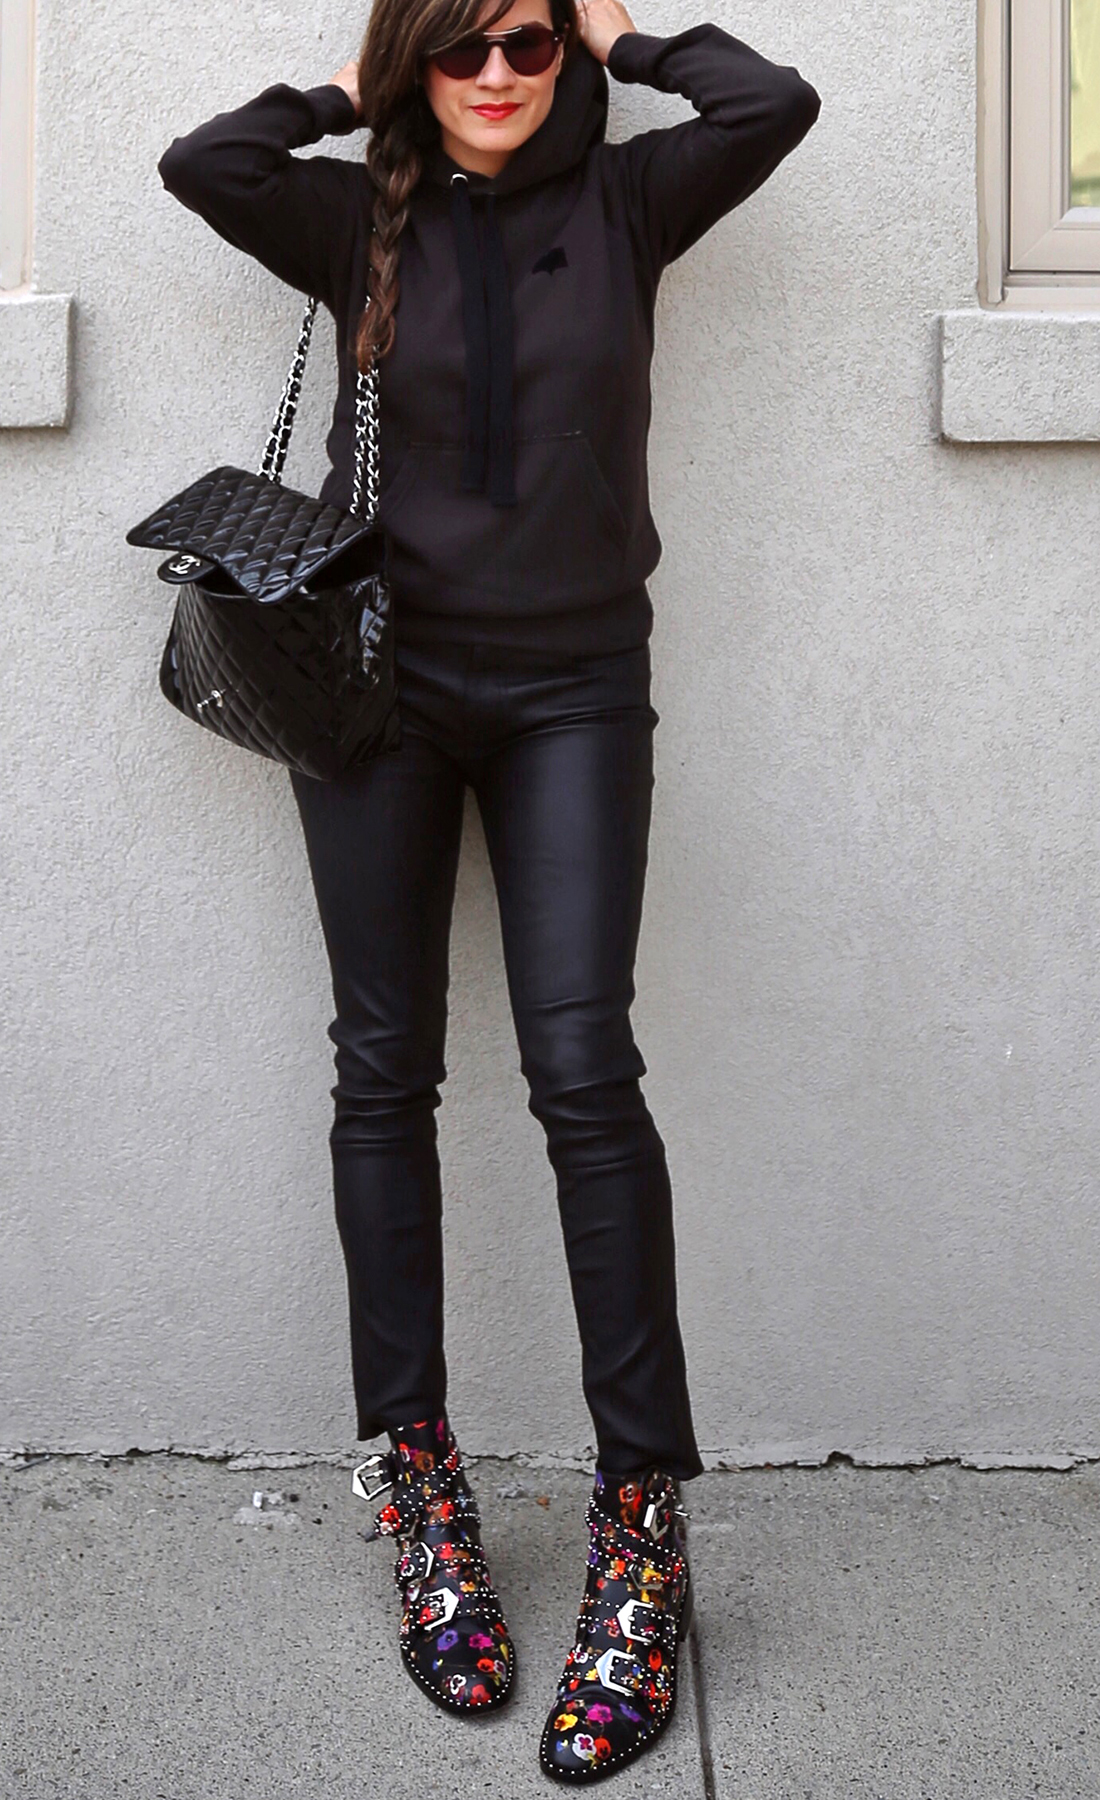 Isabel Marant Malibu Hoodie, Mackage leather jeans pants, Givenchy floral studded Elegant Line boots, Chanel patent leather flap bag - street style - woahstyle.com, nathalie martin 9.jpg